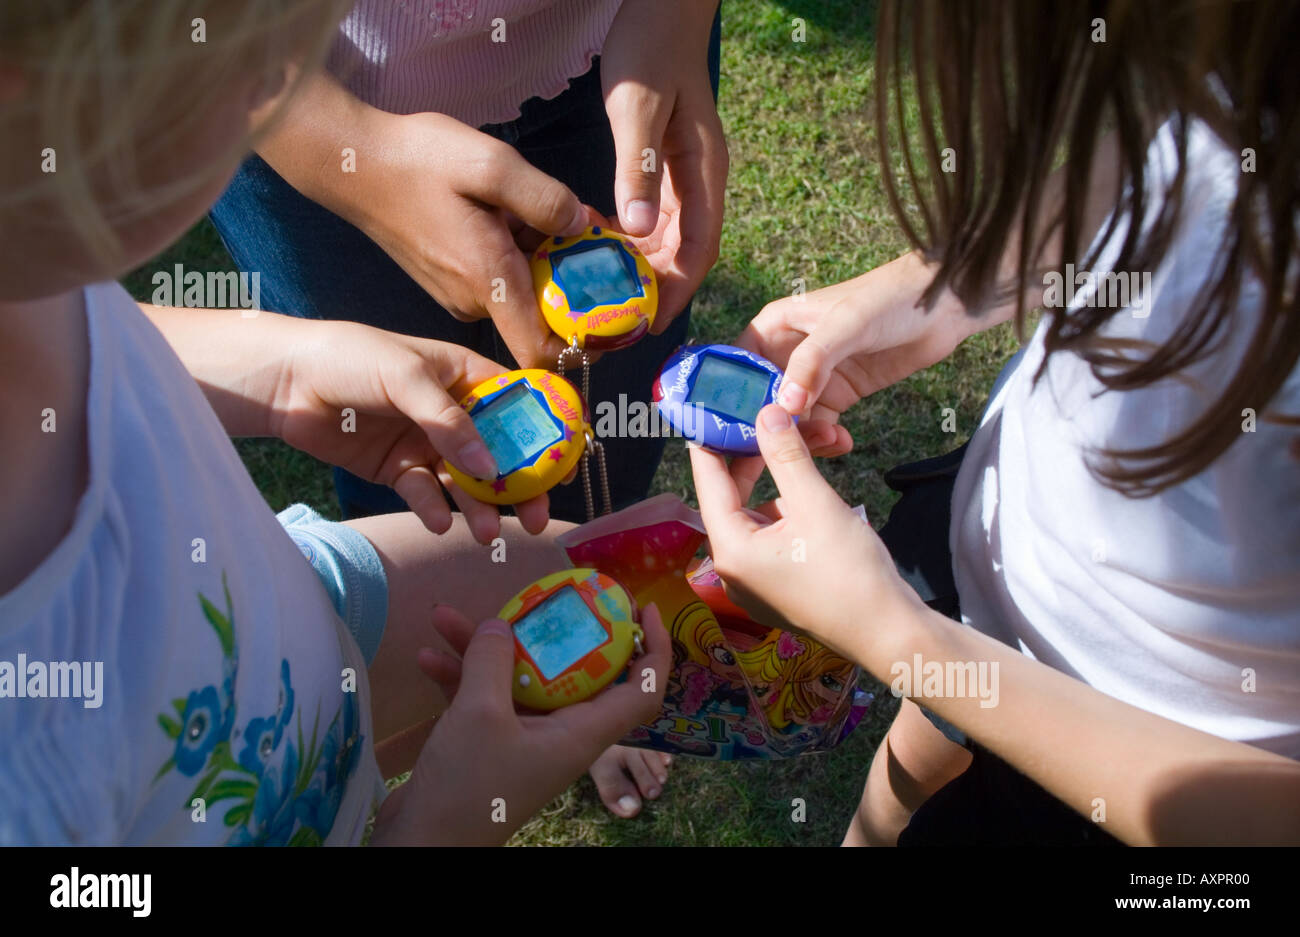 girls ten years old with tamagotchi toys - Stock Image